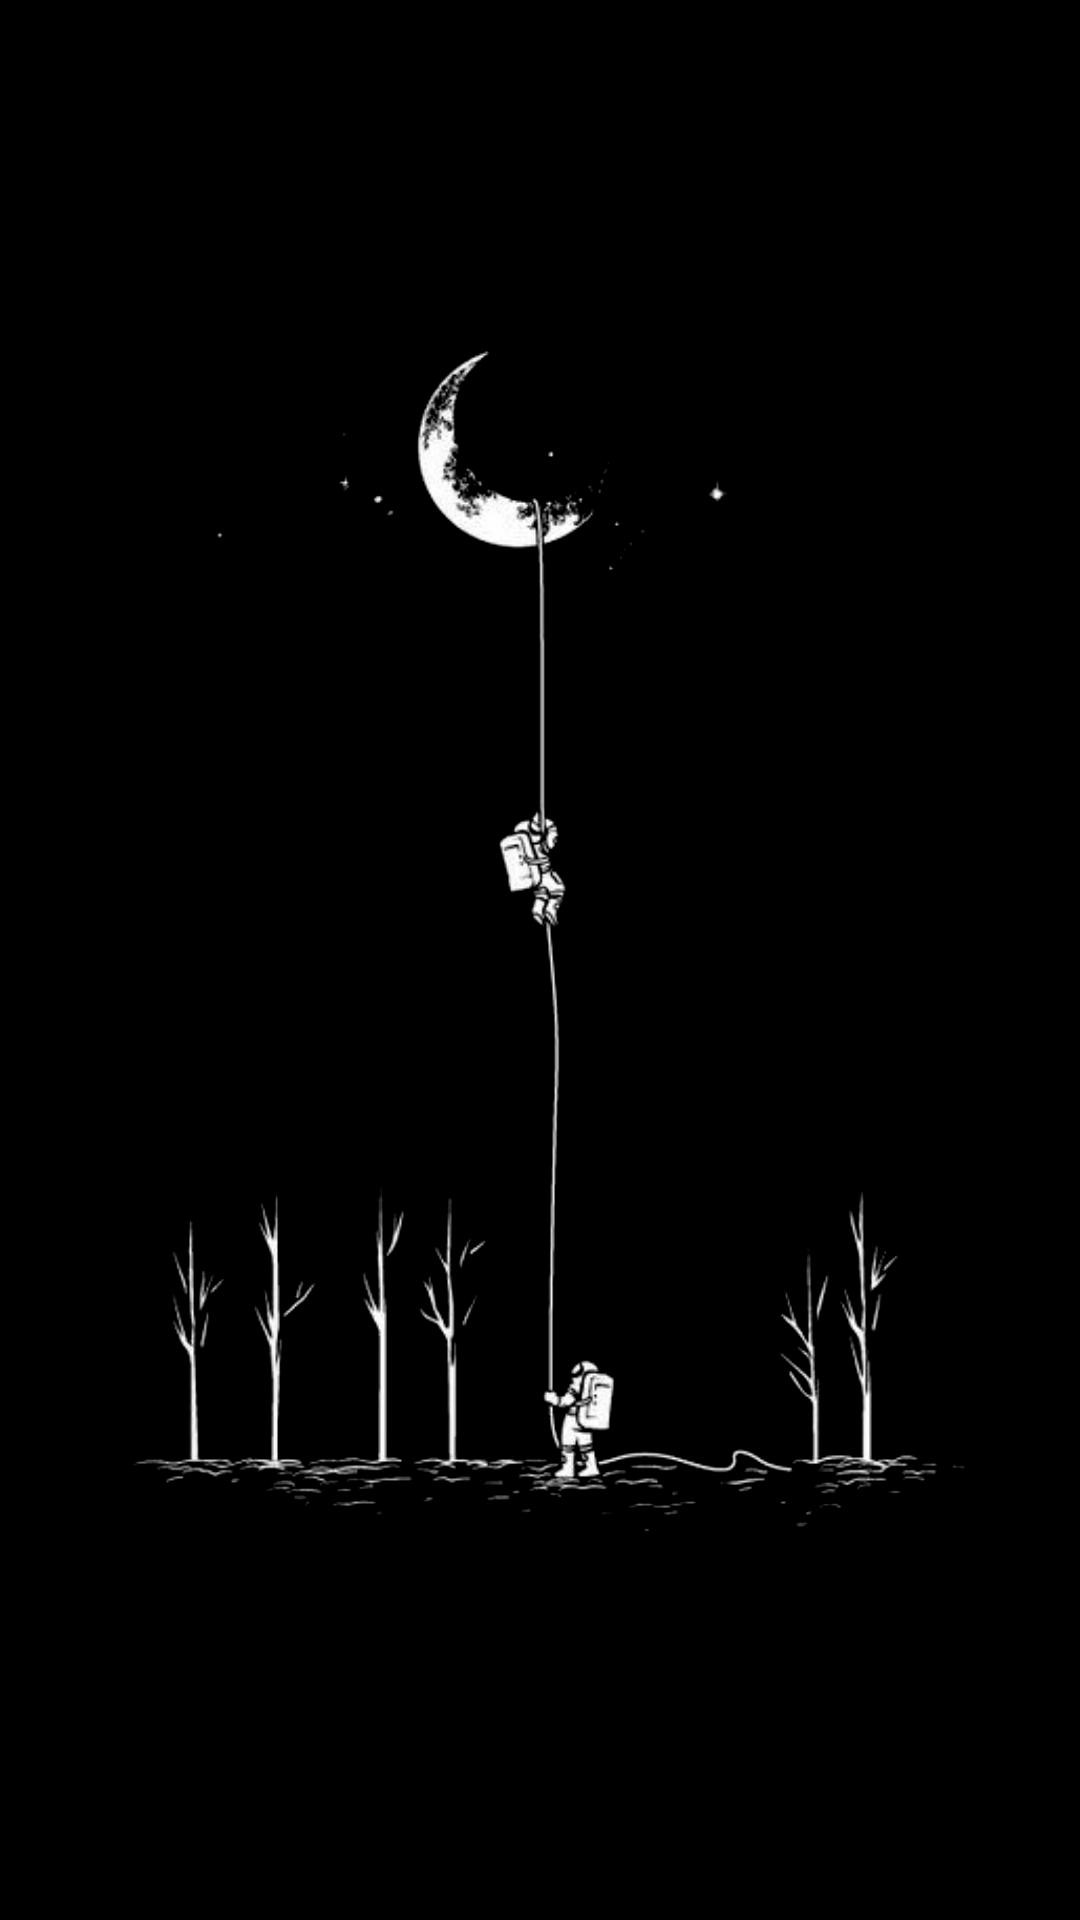 Black And White wallpaper for iPhone